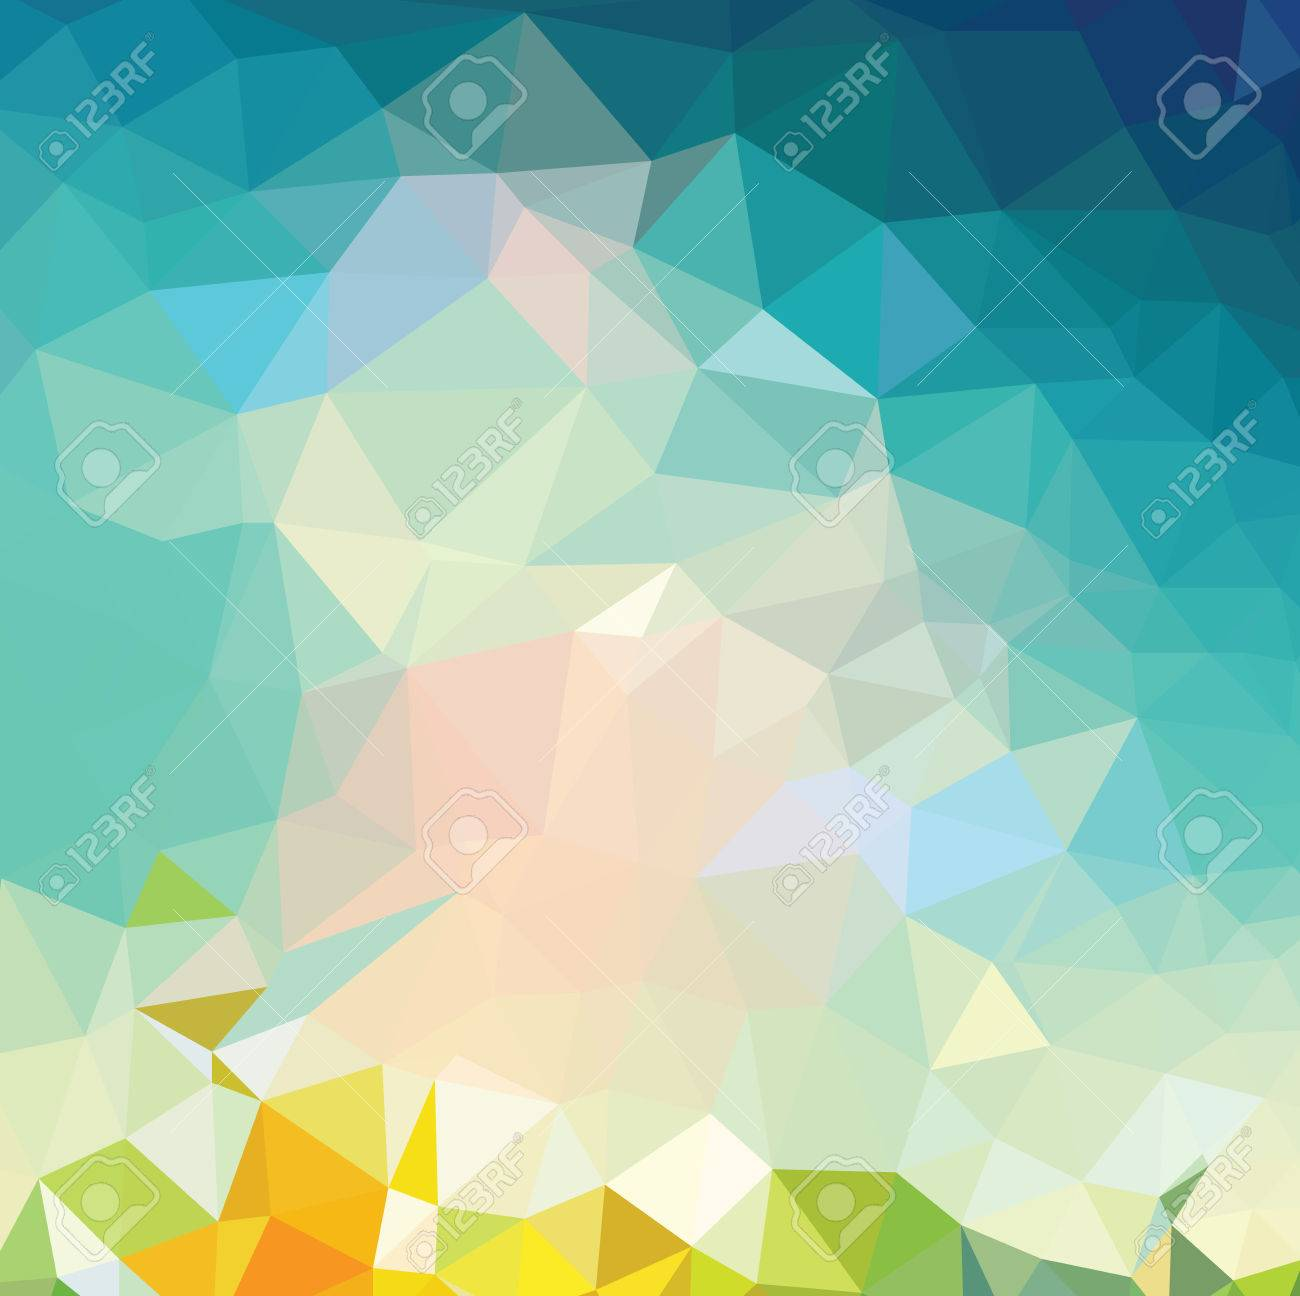 Retro pattern of geometric shapes backgrounds - 42529223